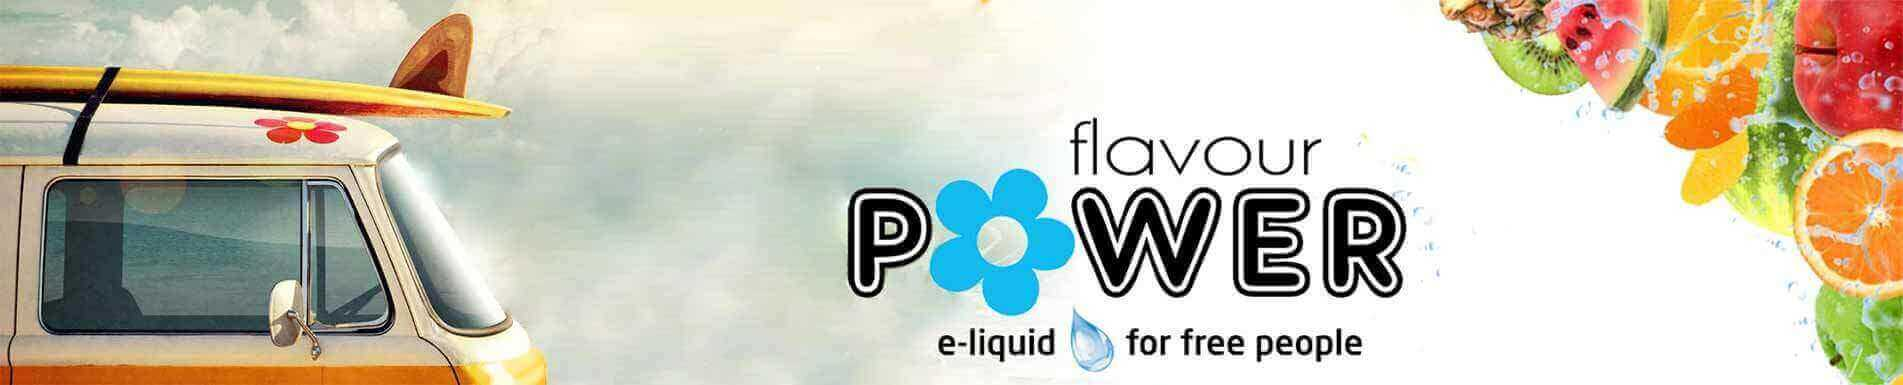 flavour power e-liquid 50/50